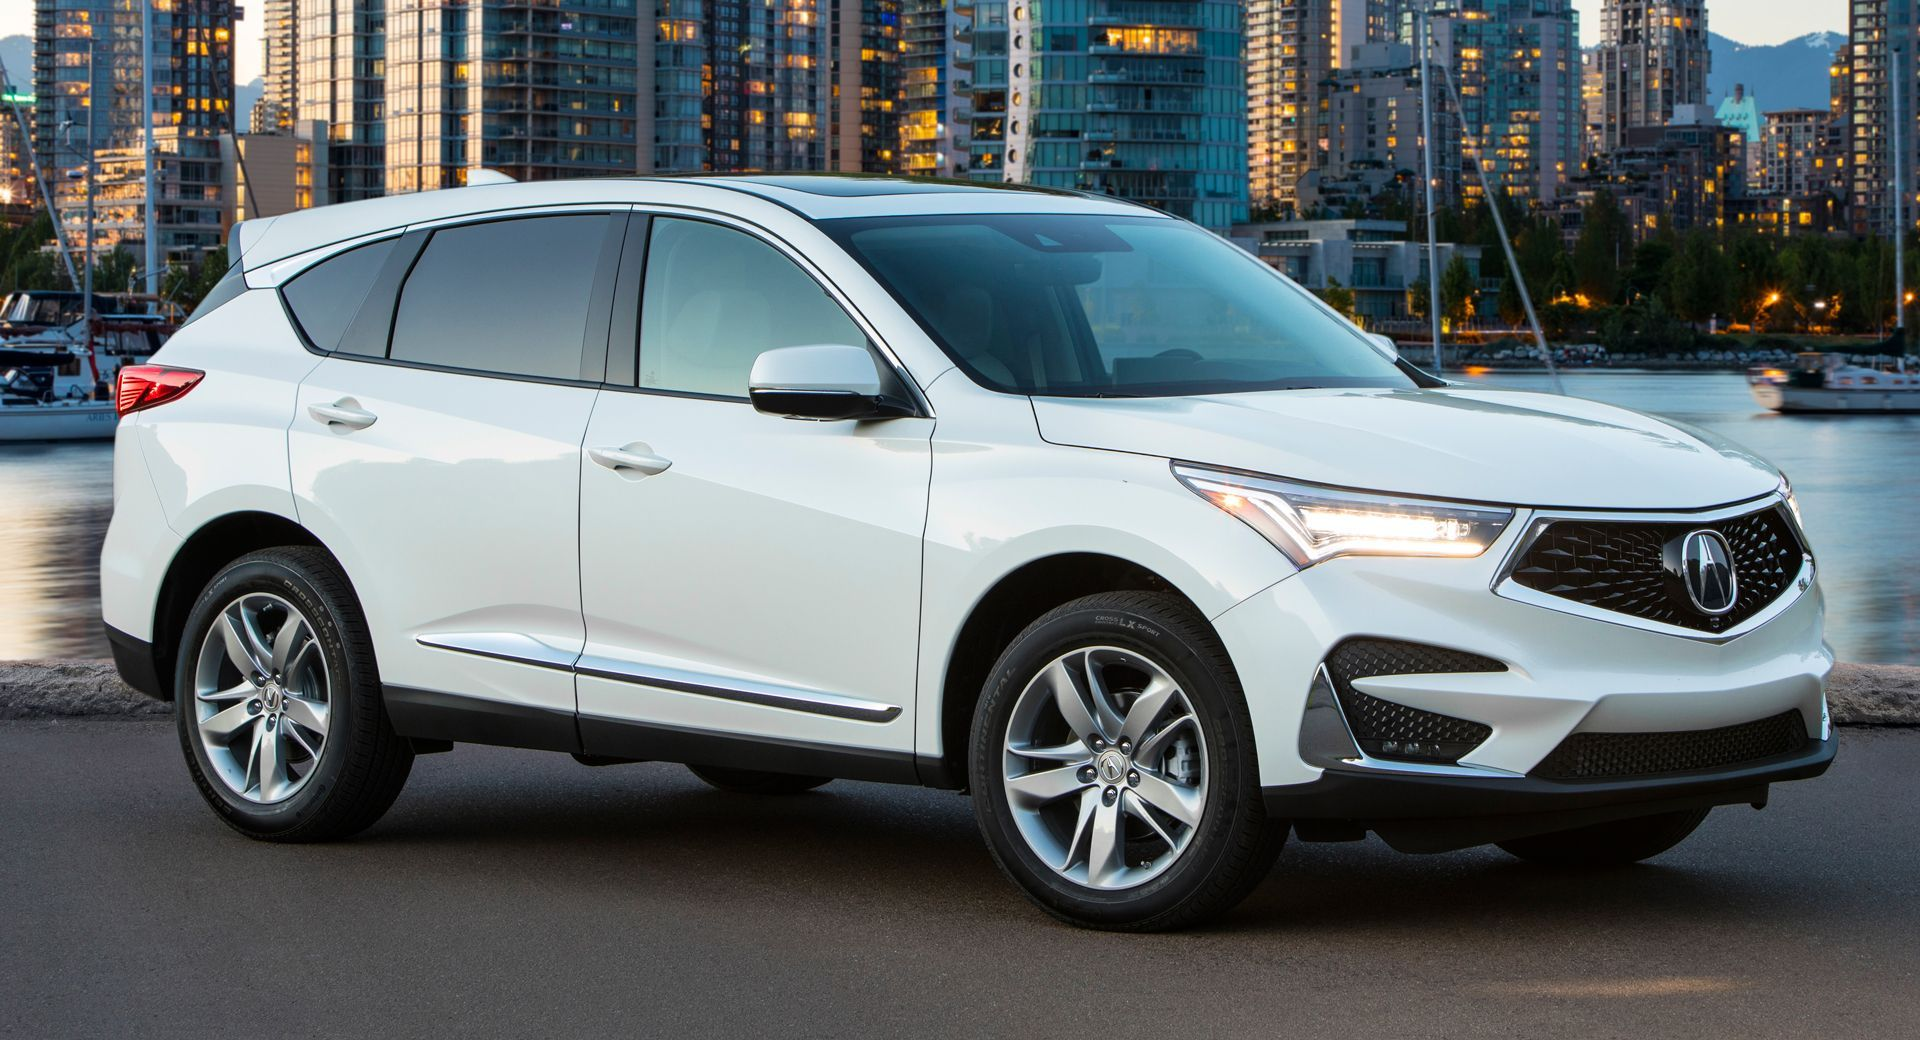 New Acura Rdx Goes On Sale This Friday Starts From 38 295 201 Images Carscoops Acura Rdx Technology Package Acura